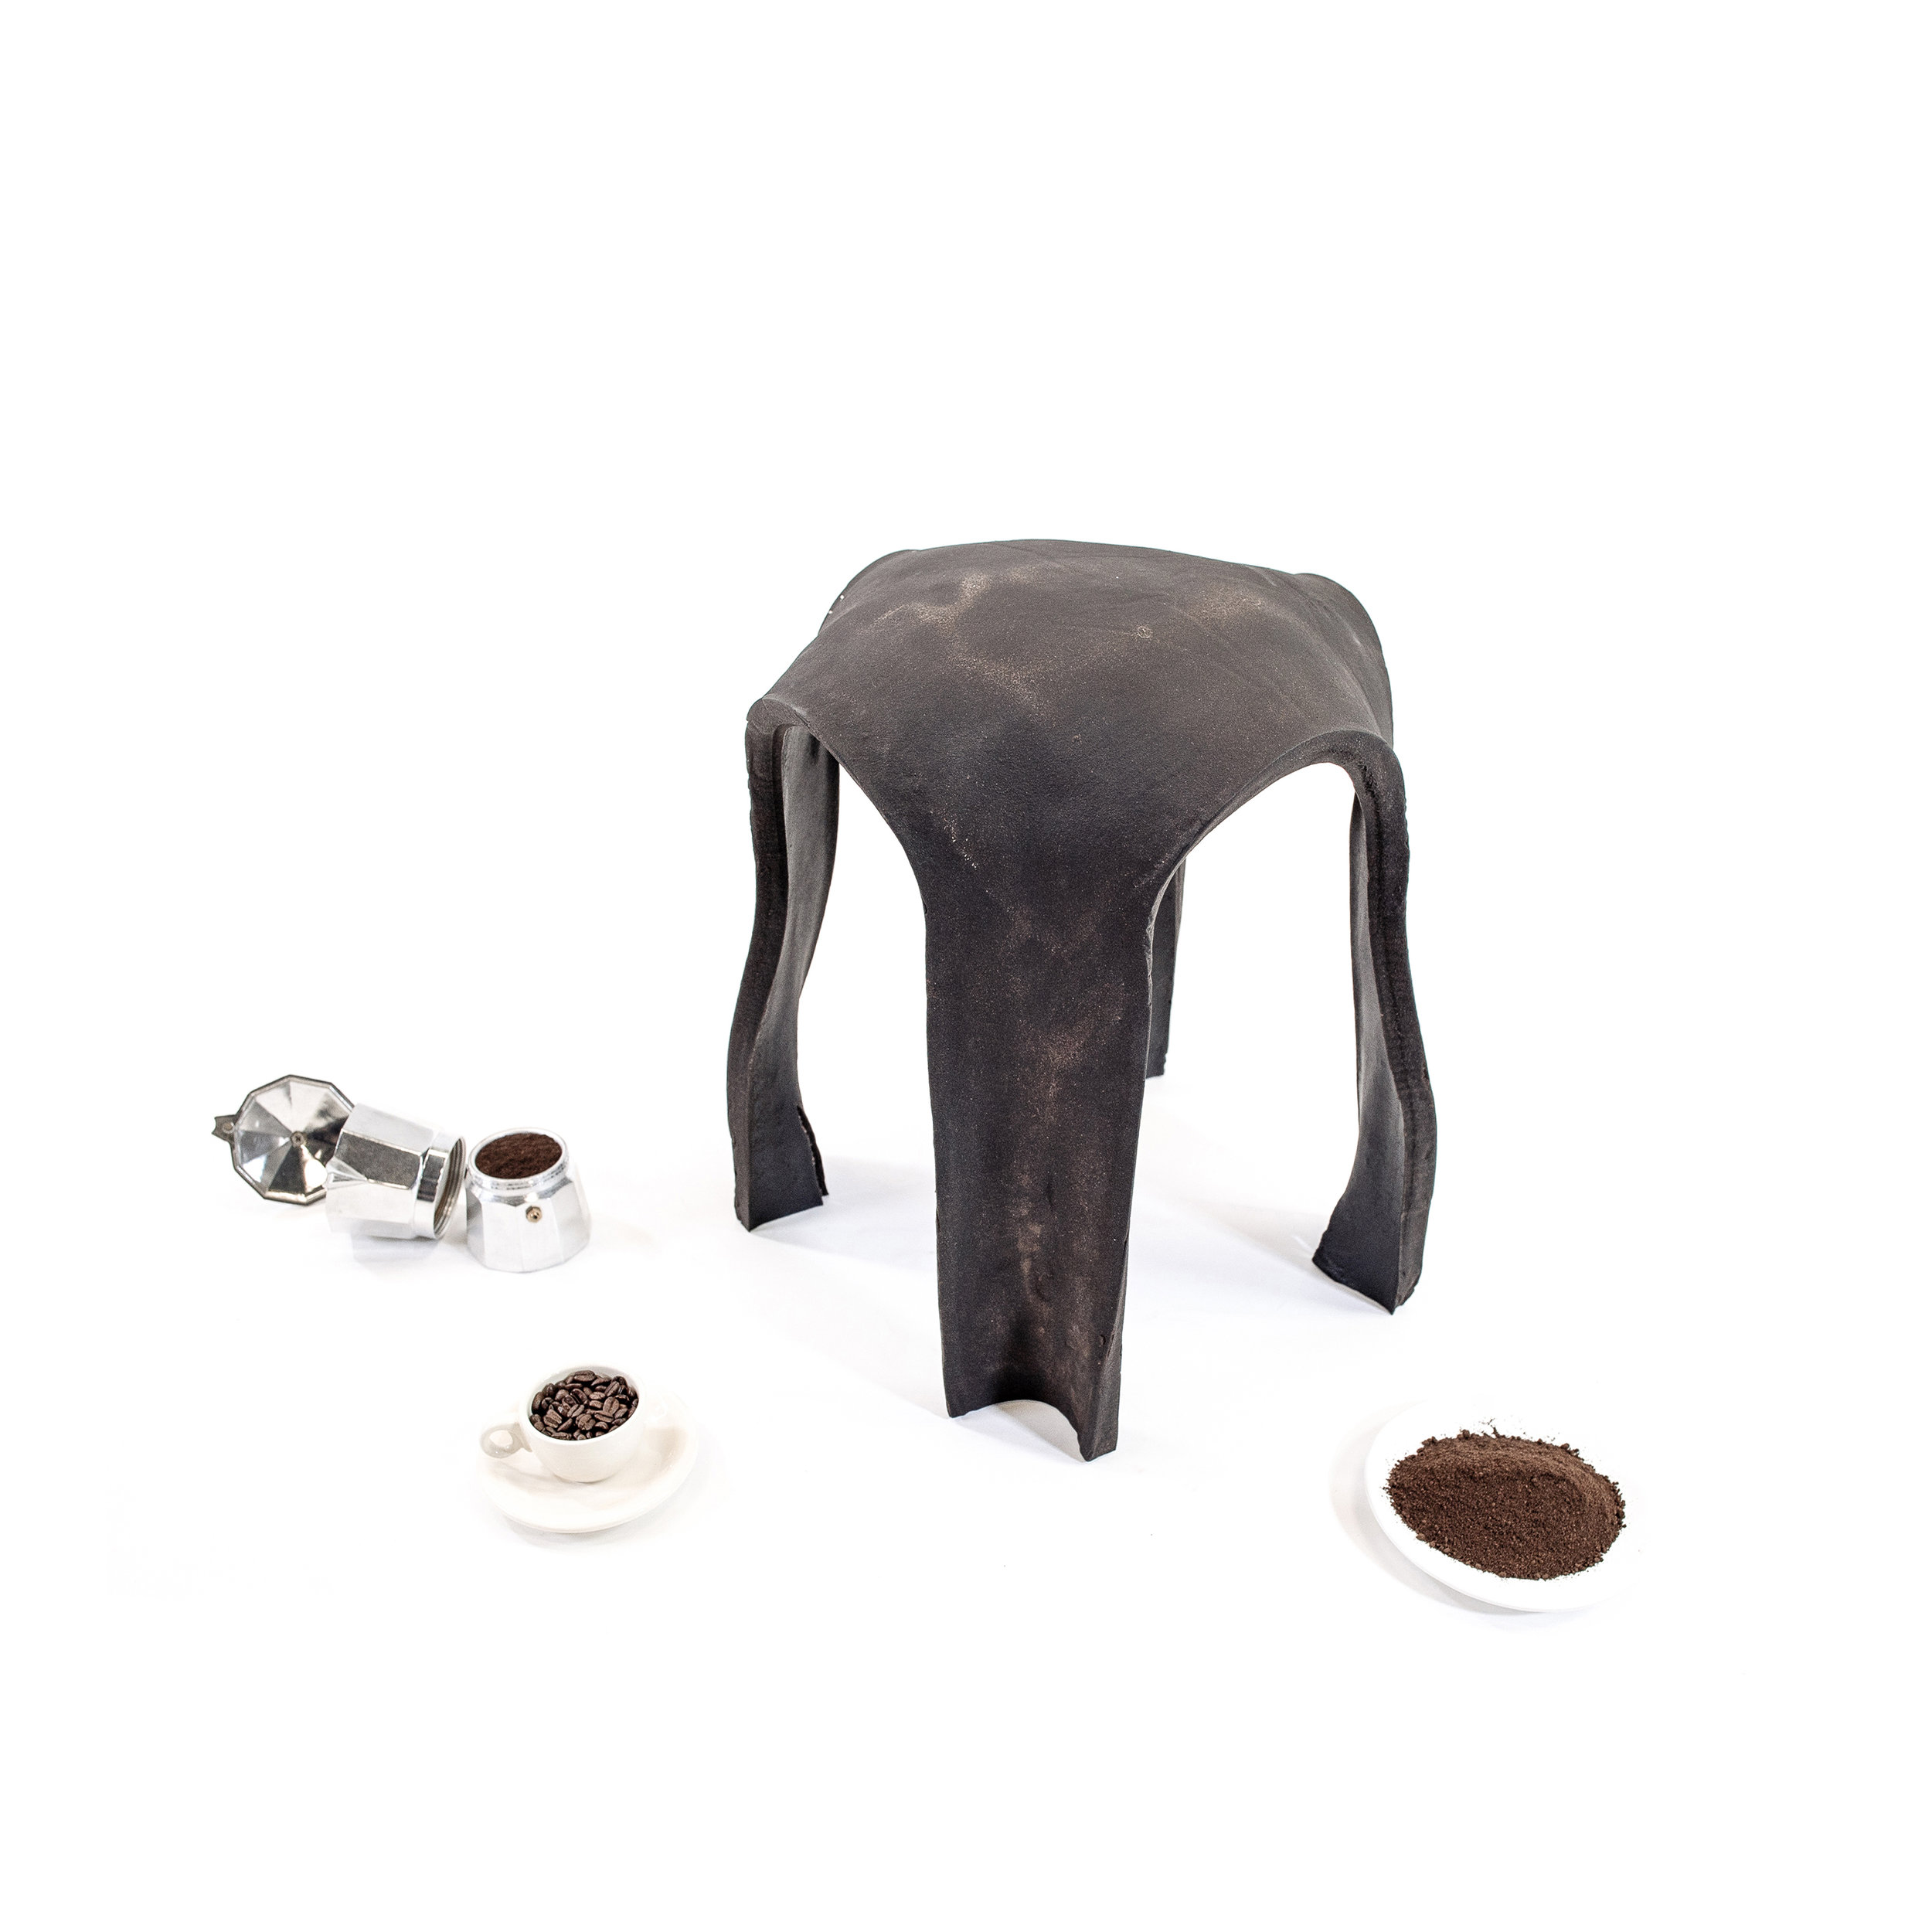 Re.Bean Coffee Stool_Kristen Wang 02.jpg